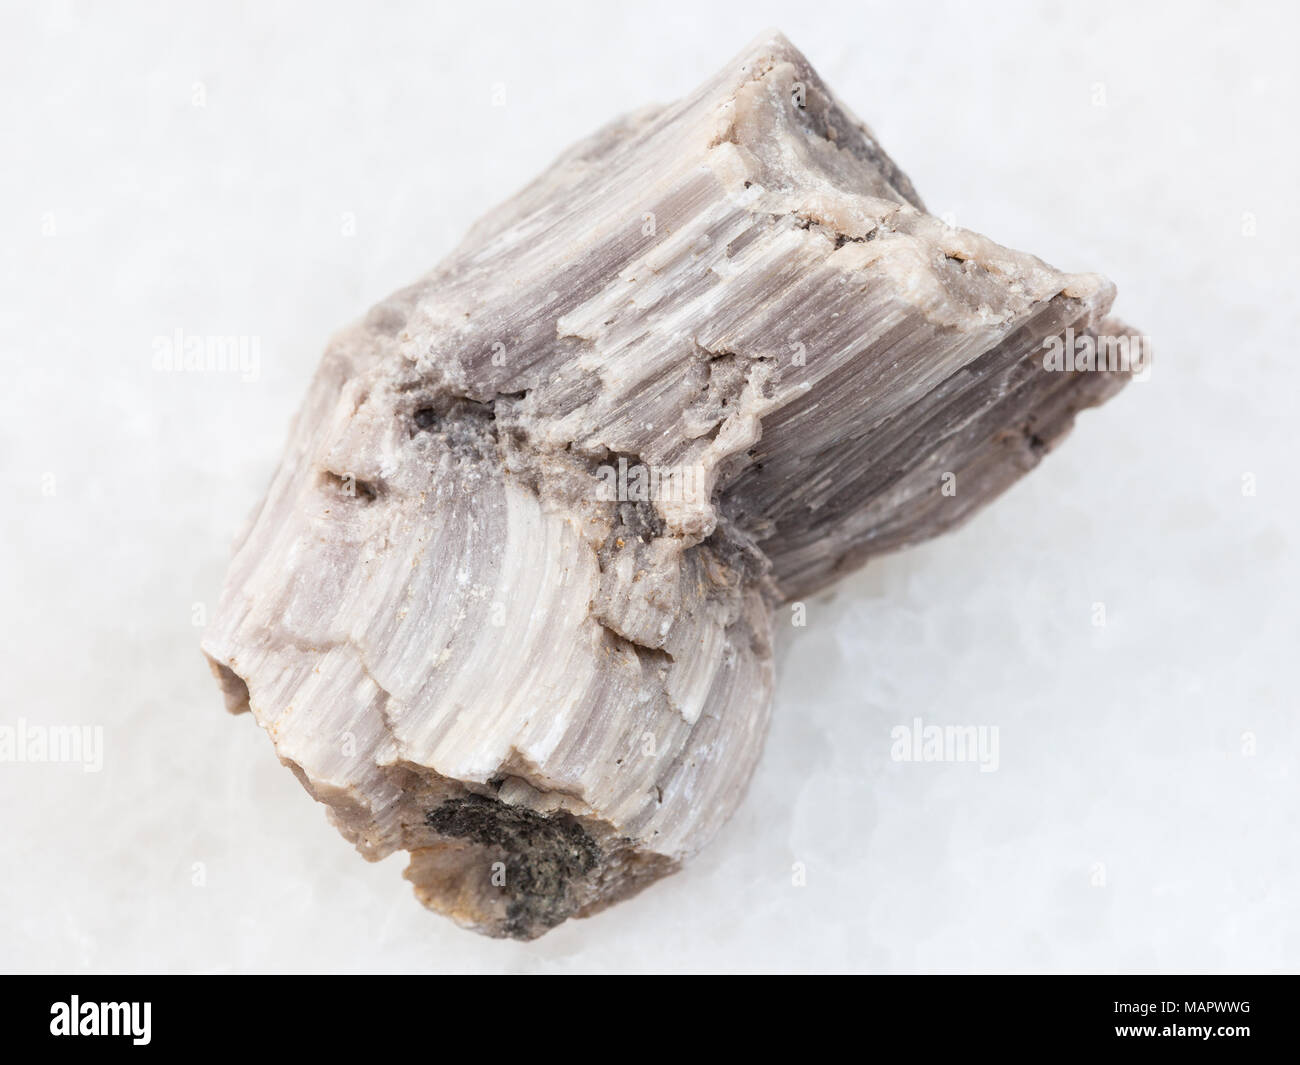 macro shooting of natural mineral rock specimen - piece of baryte stone on white marble background from Irkutsk region, Russia - Stock Image